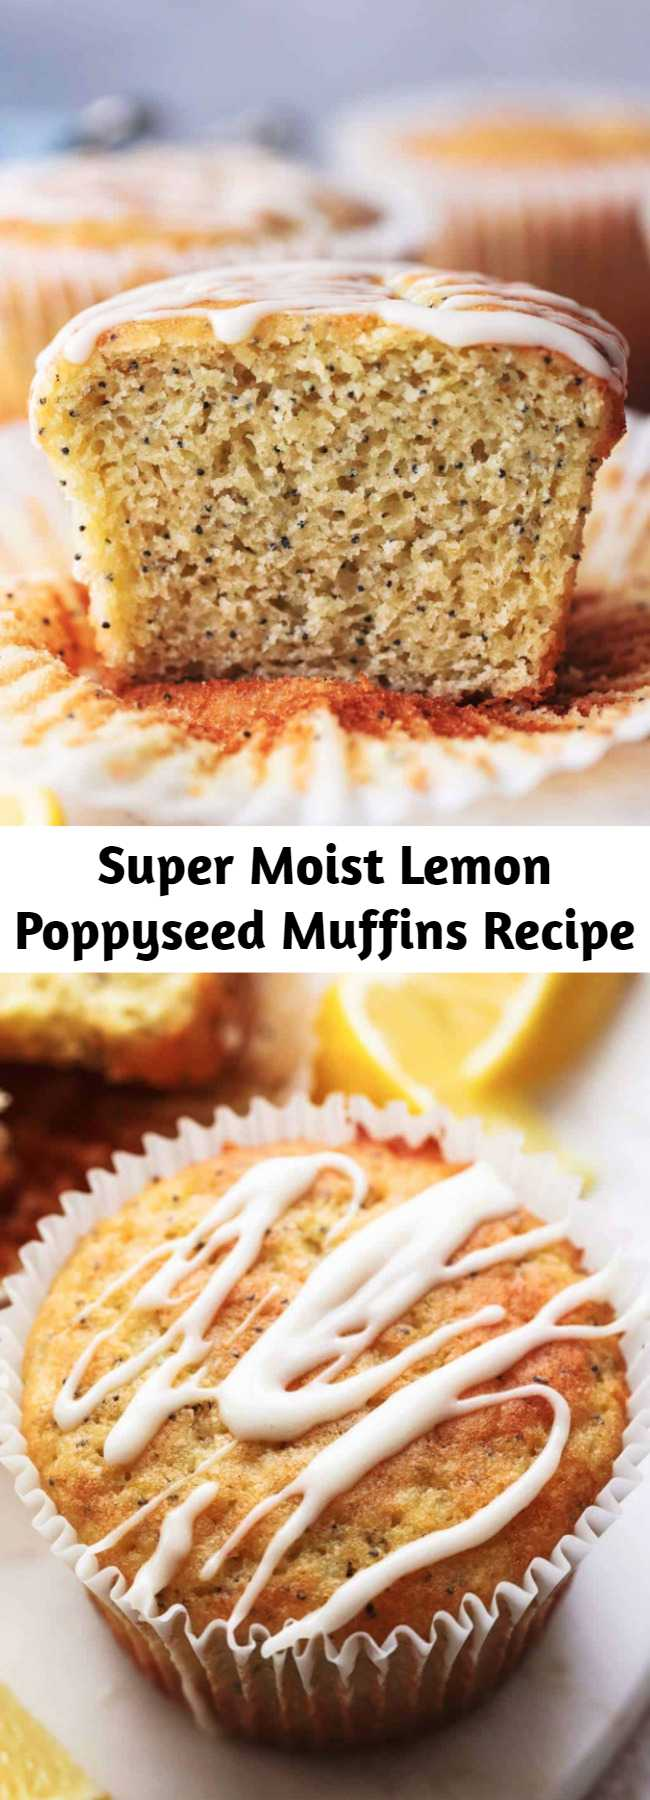 Super Moist Lemon Poppyseed Muffins Recipe - Incredibly tasty, luscious lemon poppyseed muffins made super-moist with Greek yogurt and topped with sweet and tangy cream cheese lemon glaze!